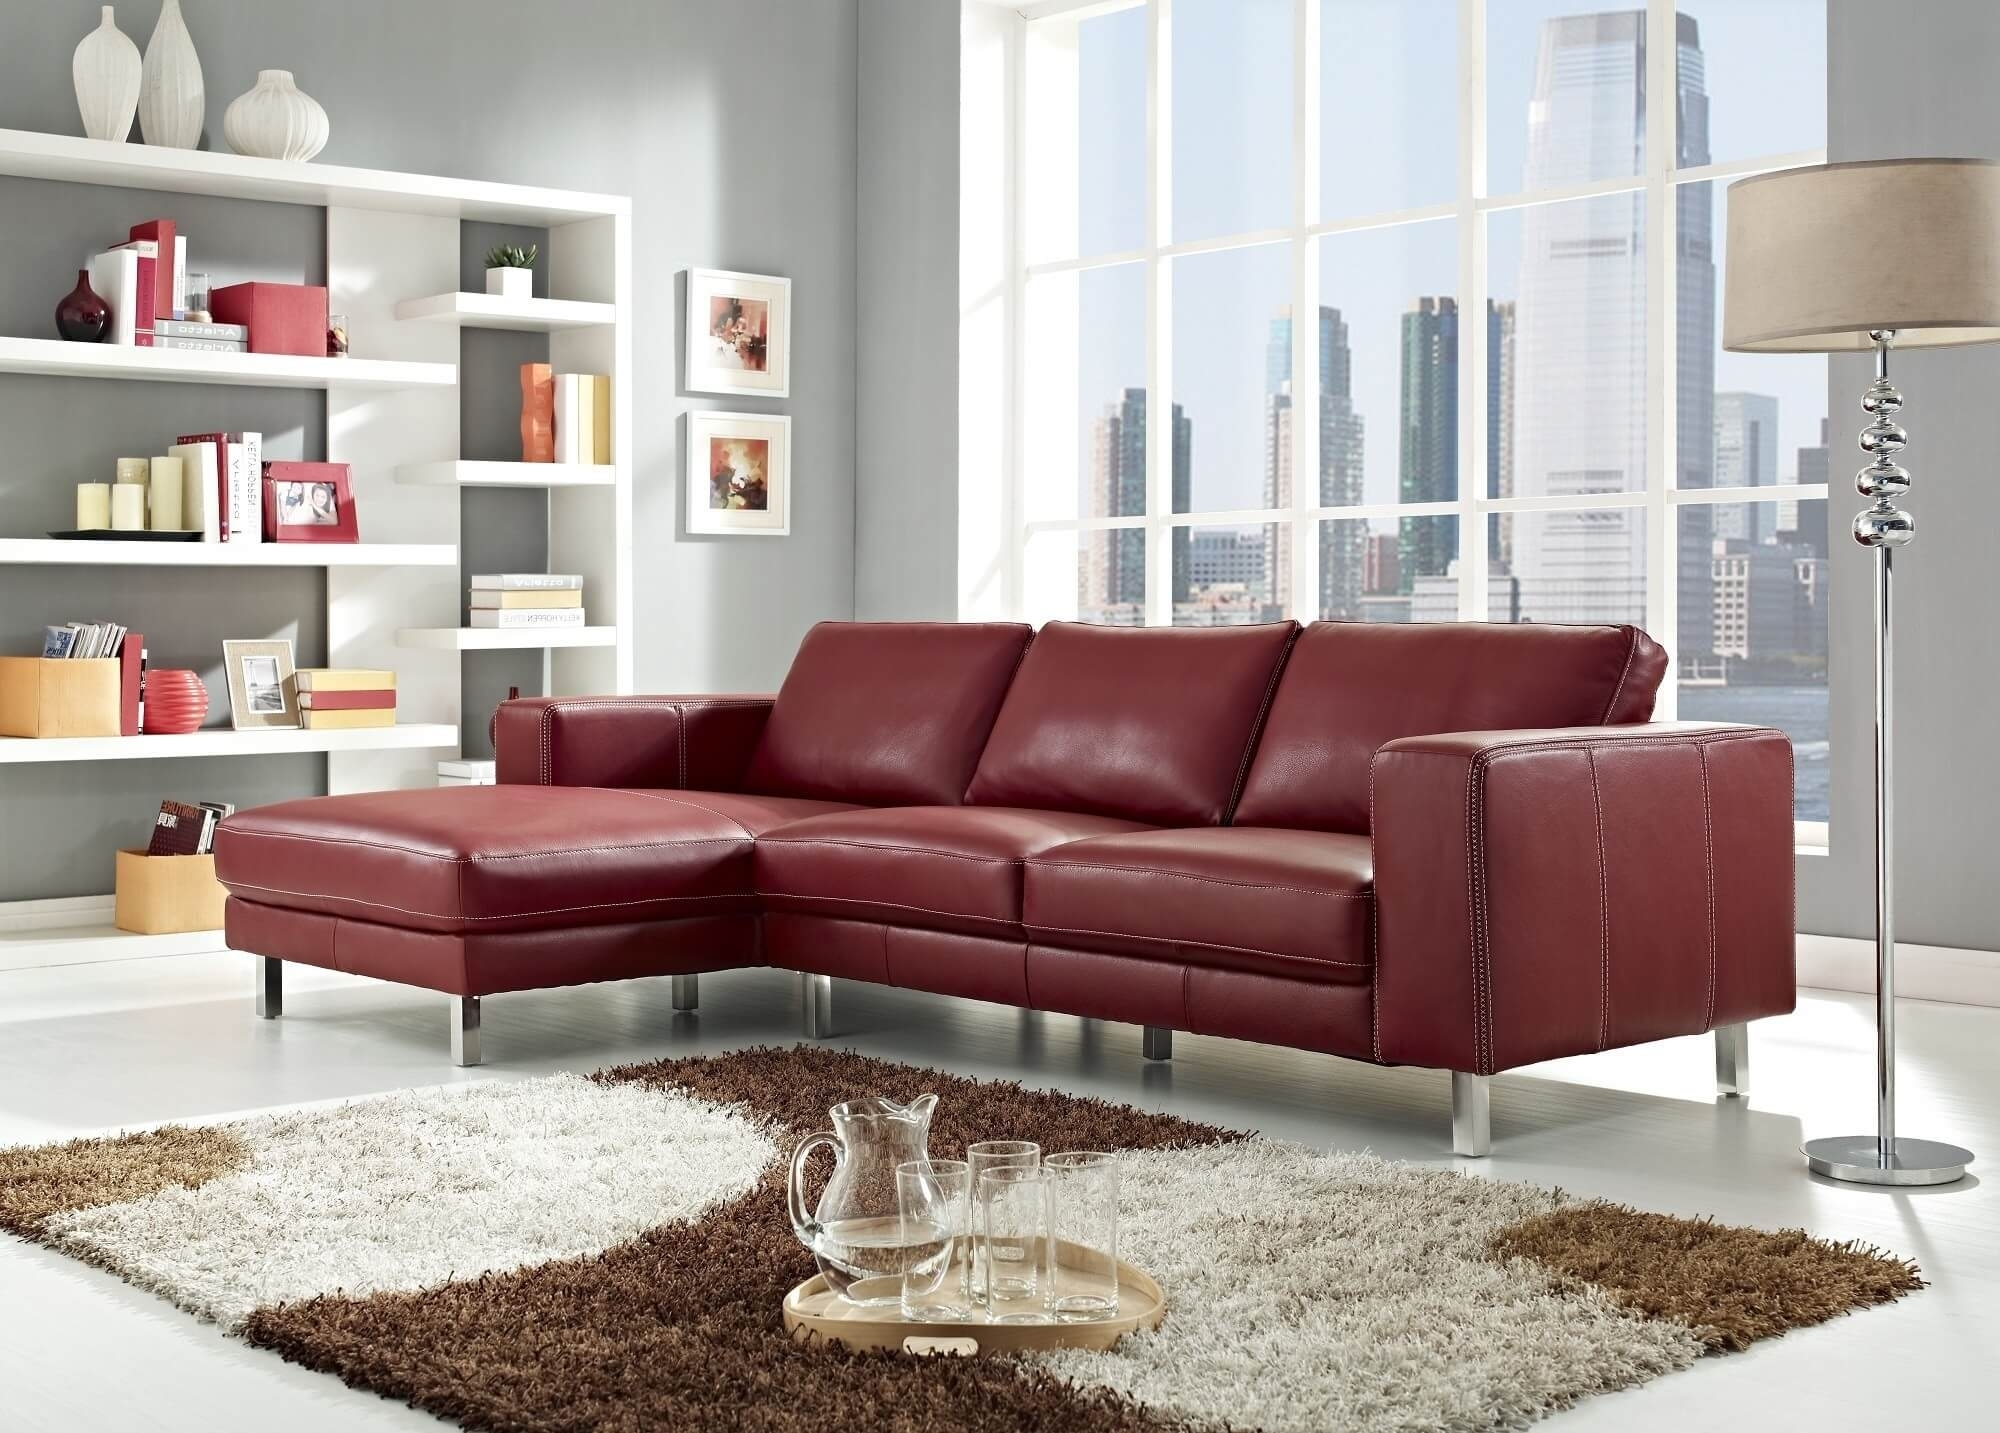 Stylish Modern Red Sectional Sofas With Regard To Red Leather Sectionals With Chaise (Image 10 of 10)